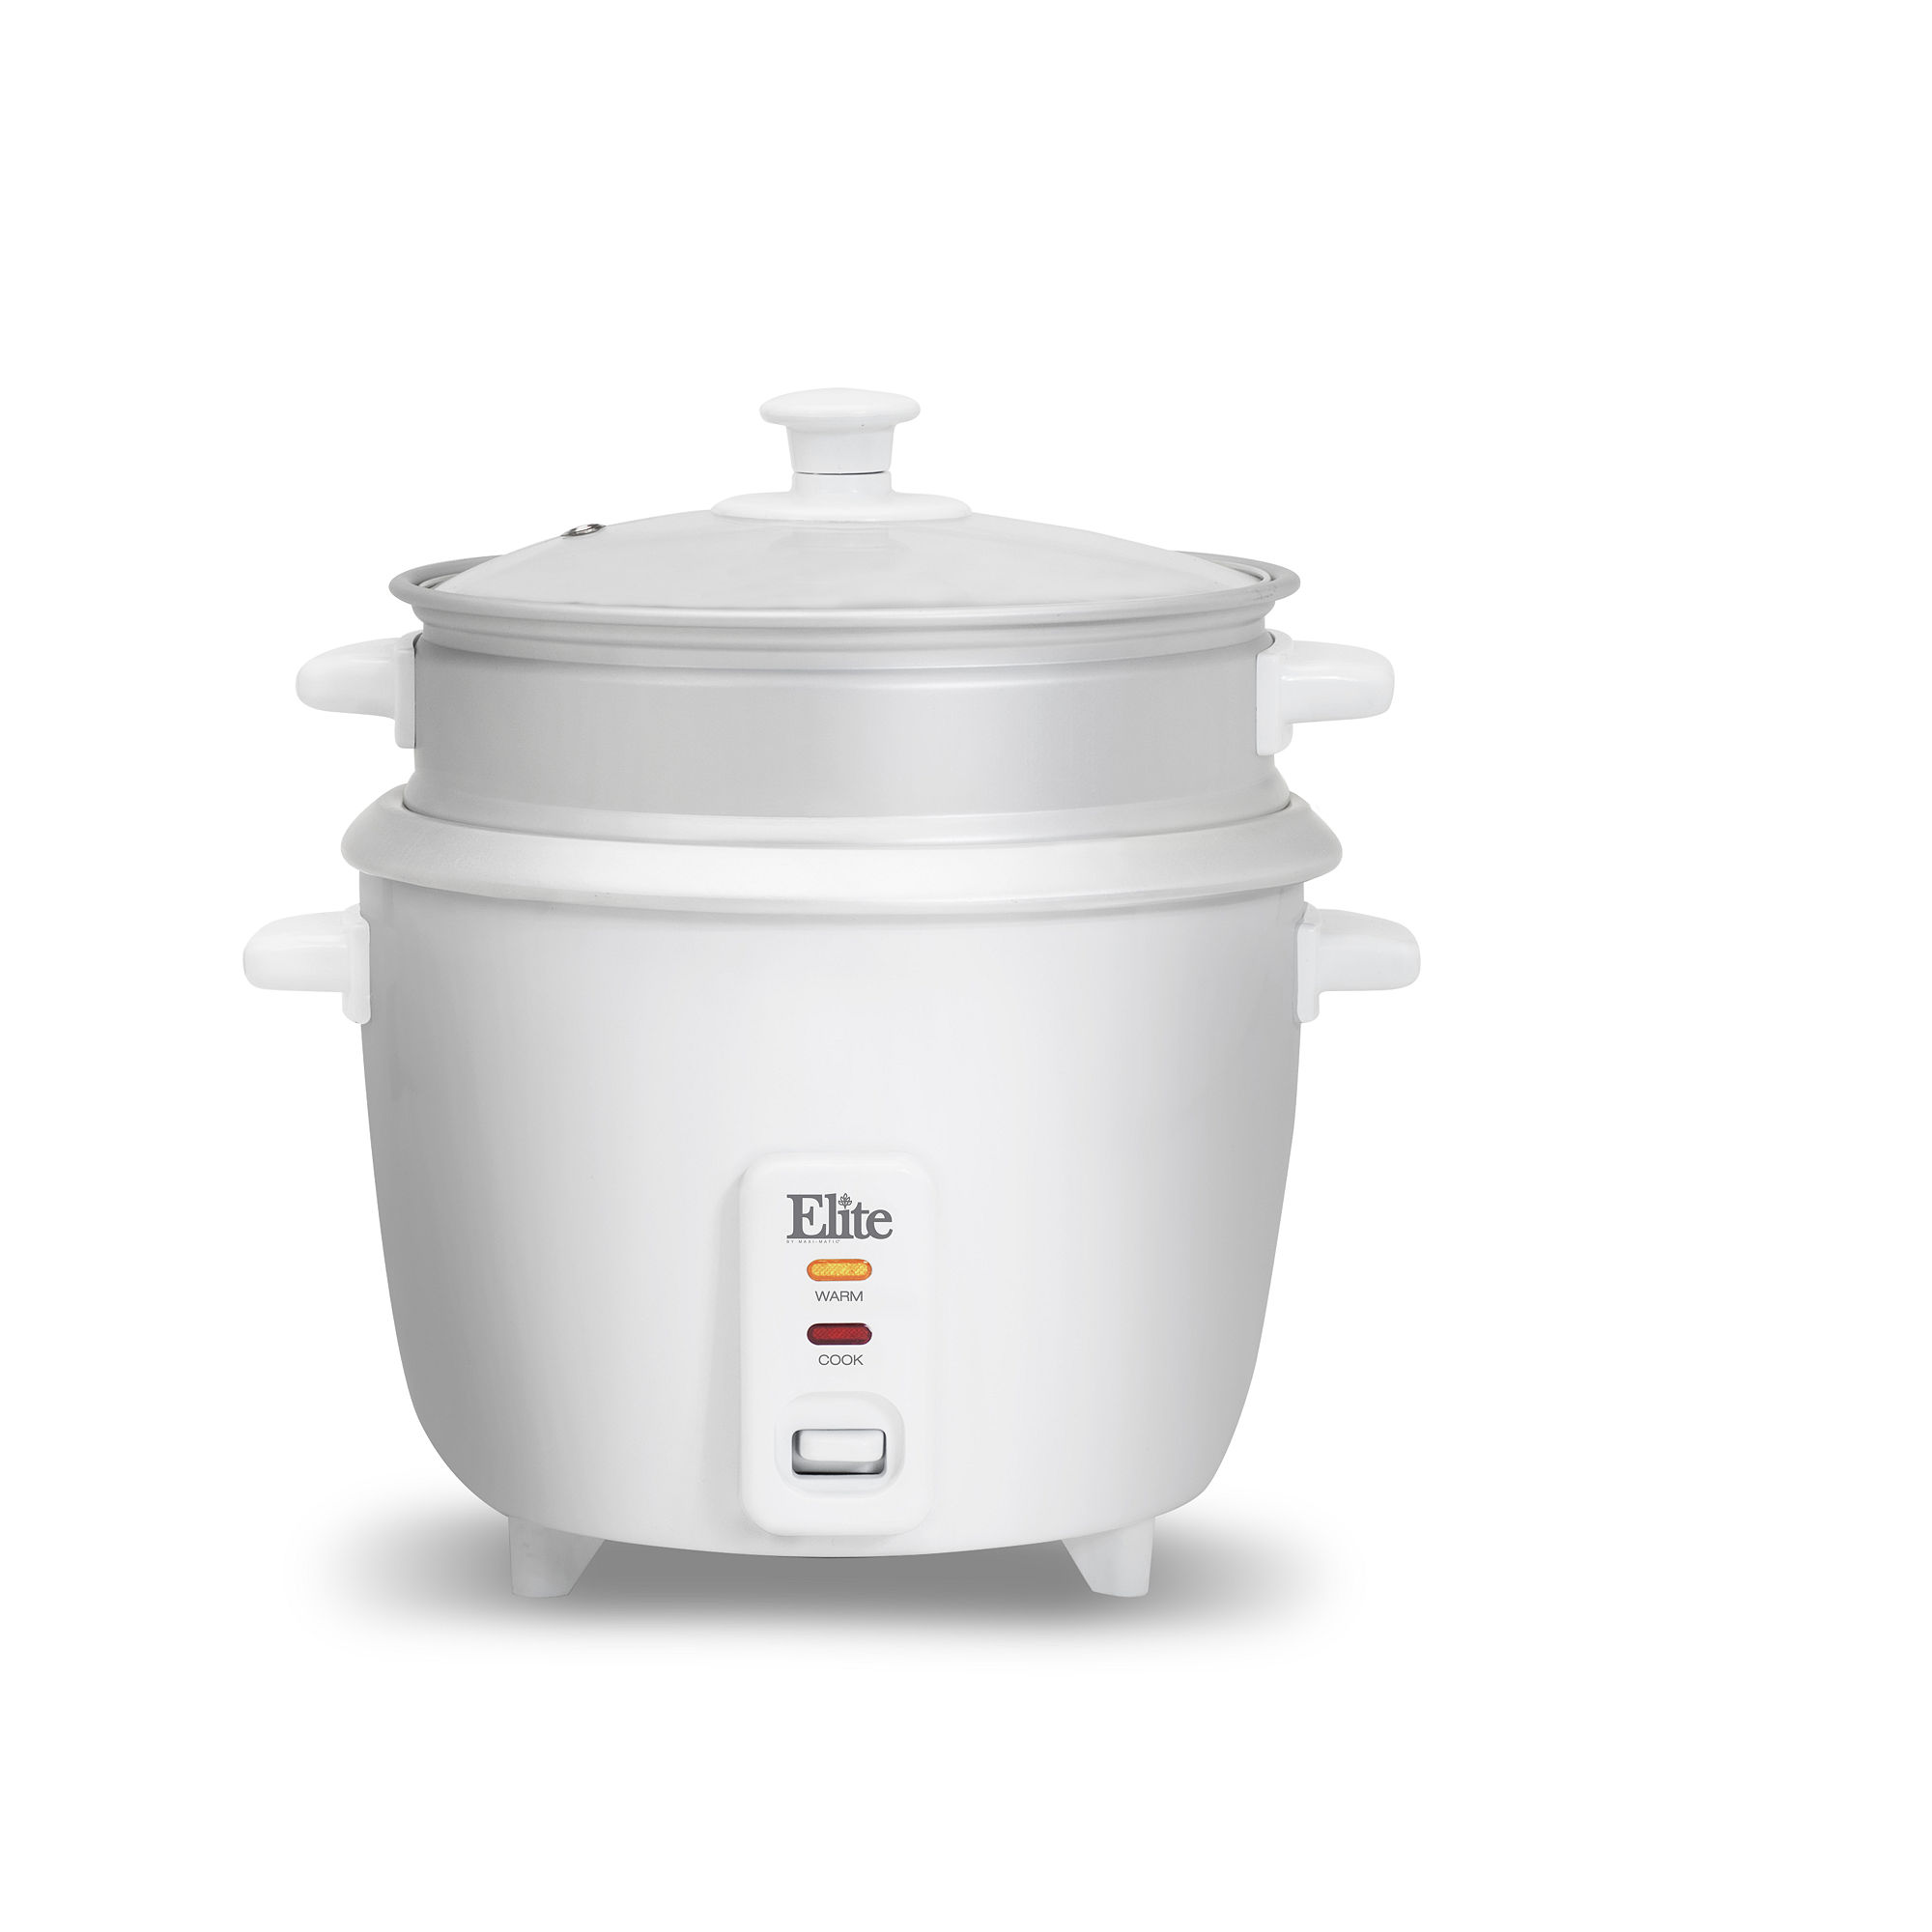 Elite Erc-008st Rice Cooker